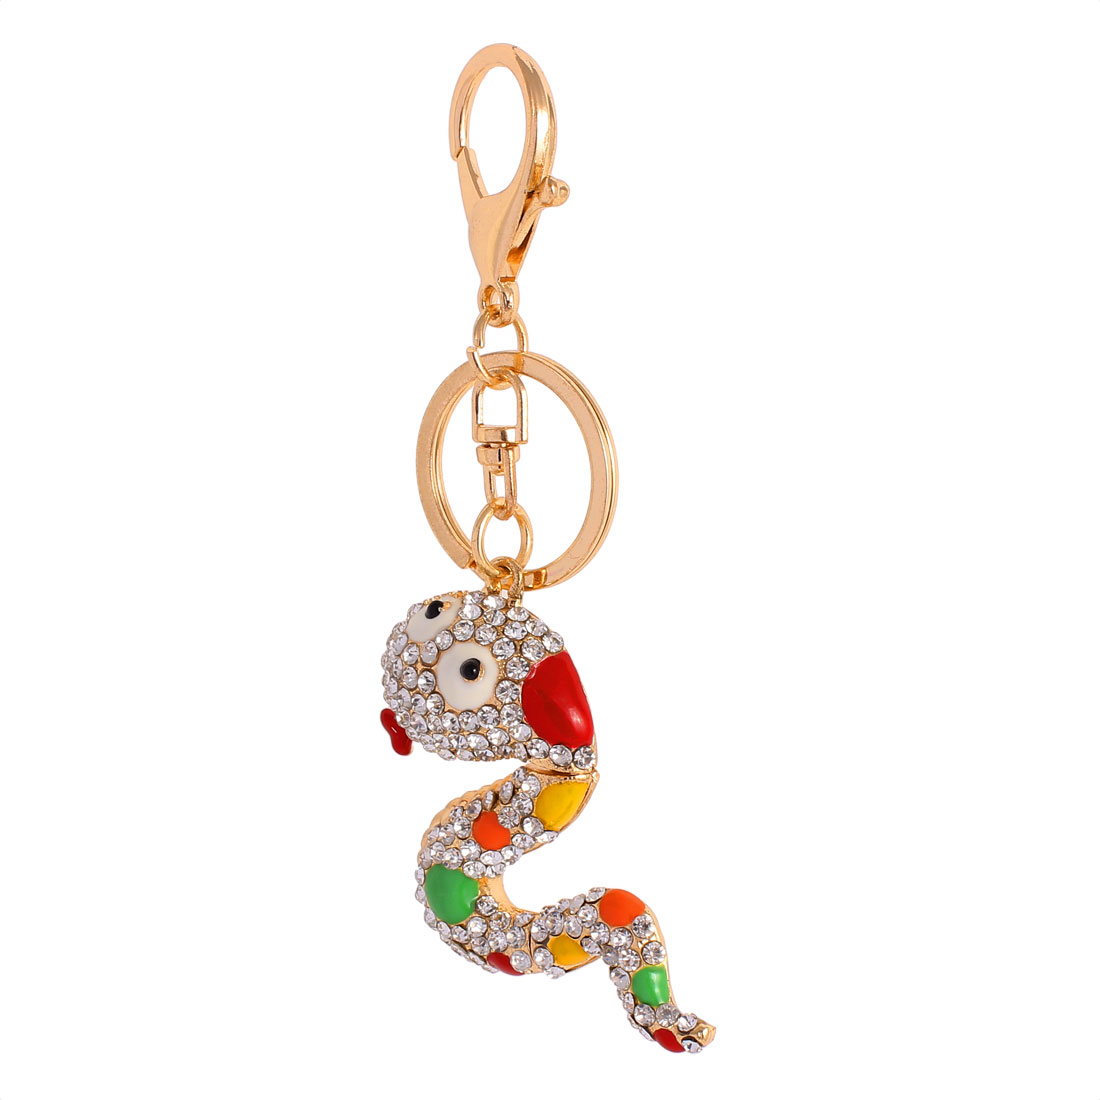 Metal Ring Faux Rhinestone Snake Shape Bag Decor Hanging Key Chain Colorful